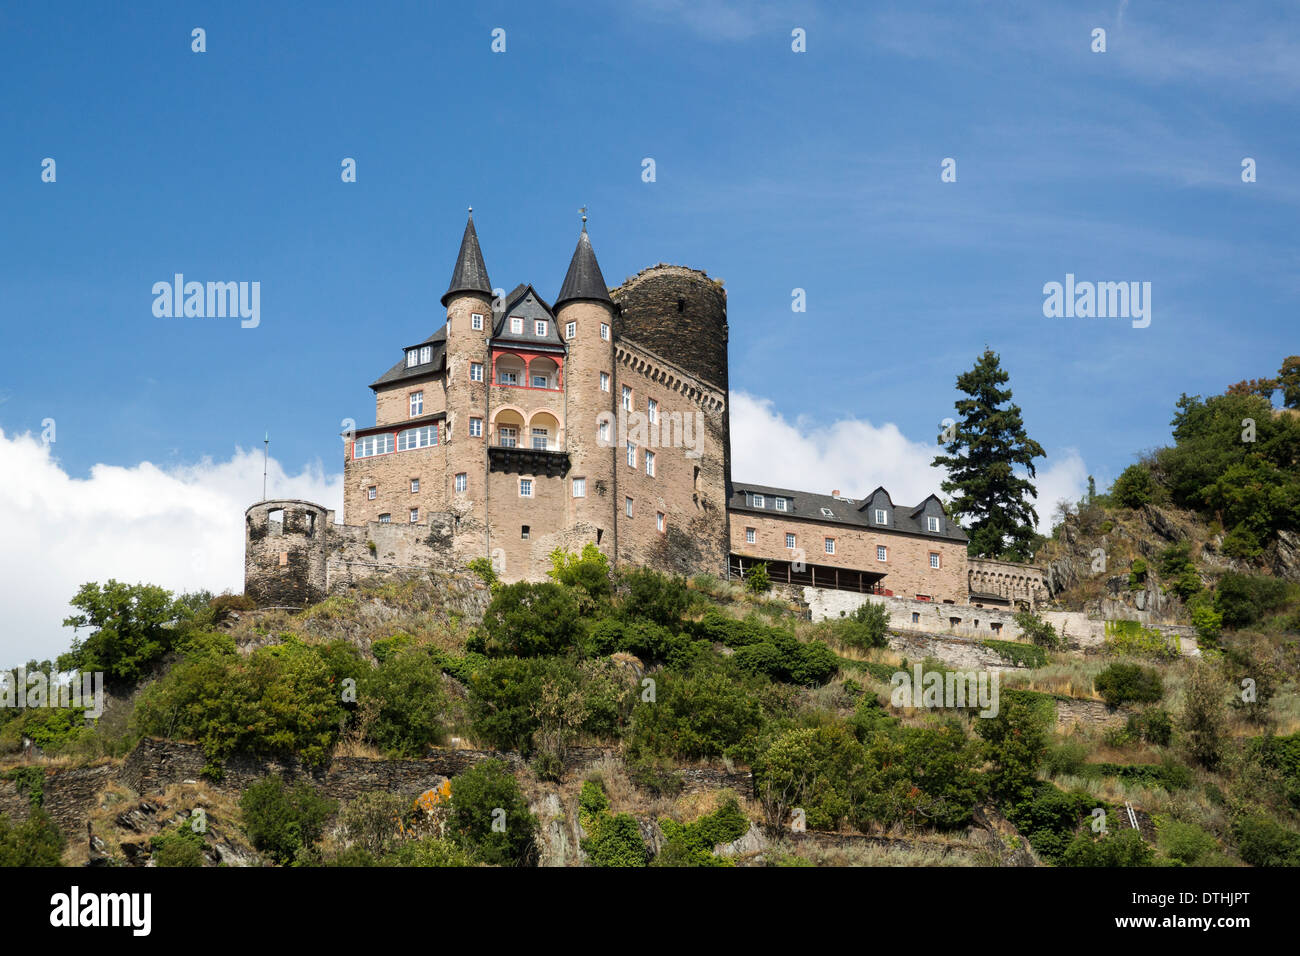 Katz Castle On Hillside In Rhine River Valley Stock Photo Royalty - Rhine river location